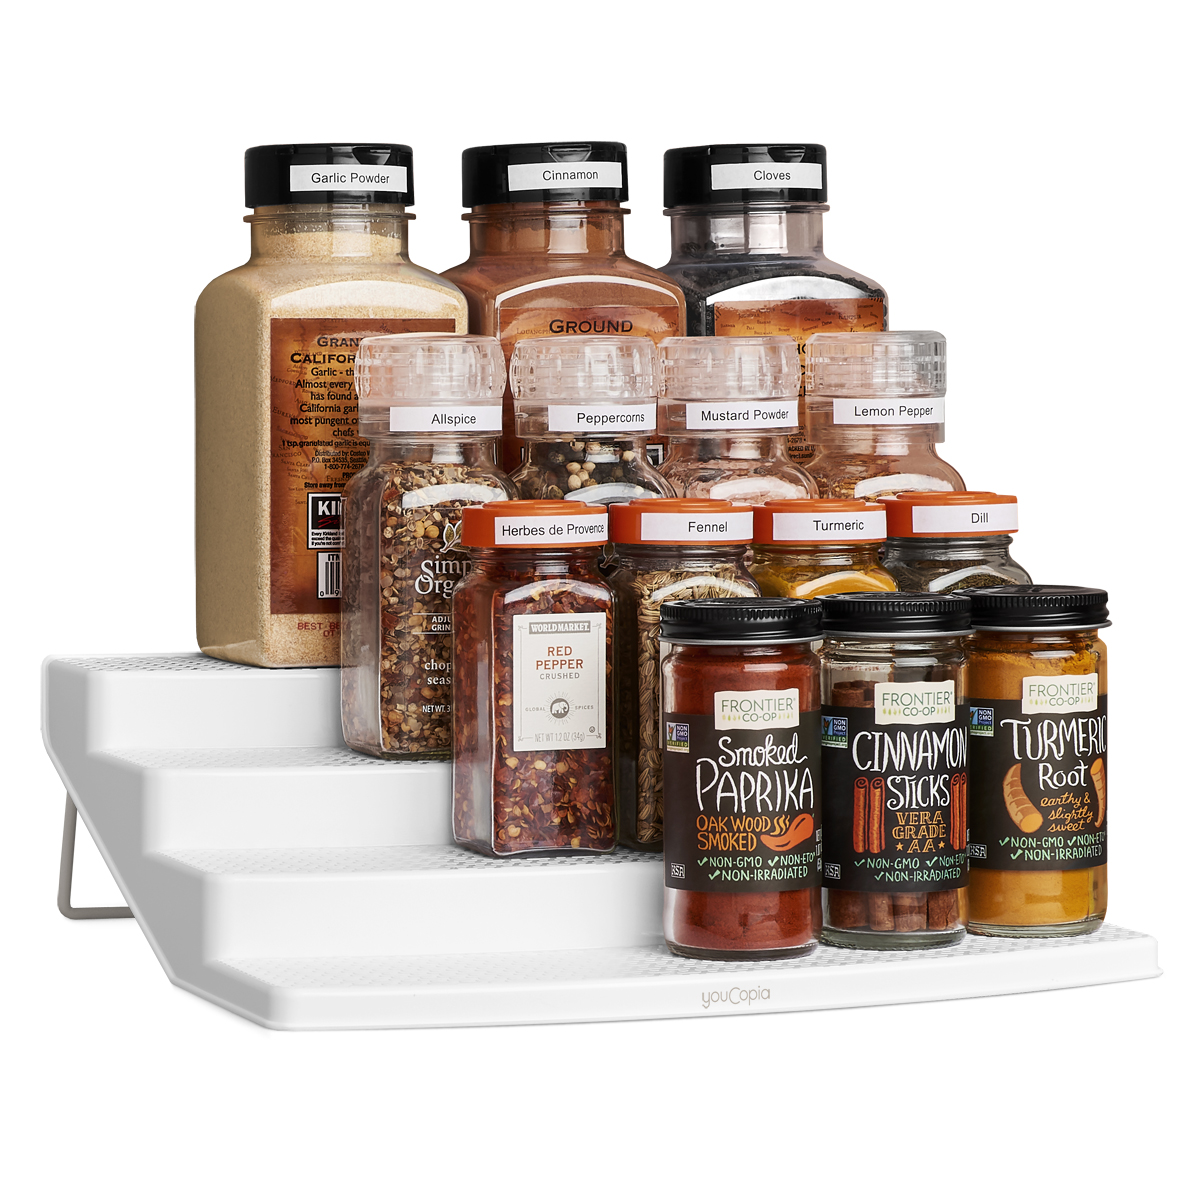 YouCopia SpiceSteps 24-Bottle Spice Organizer